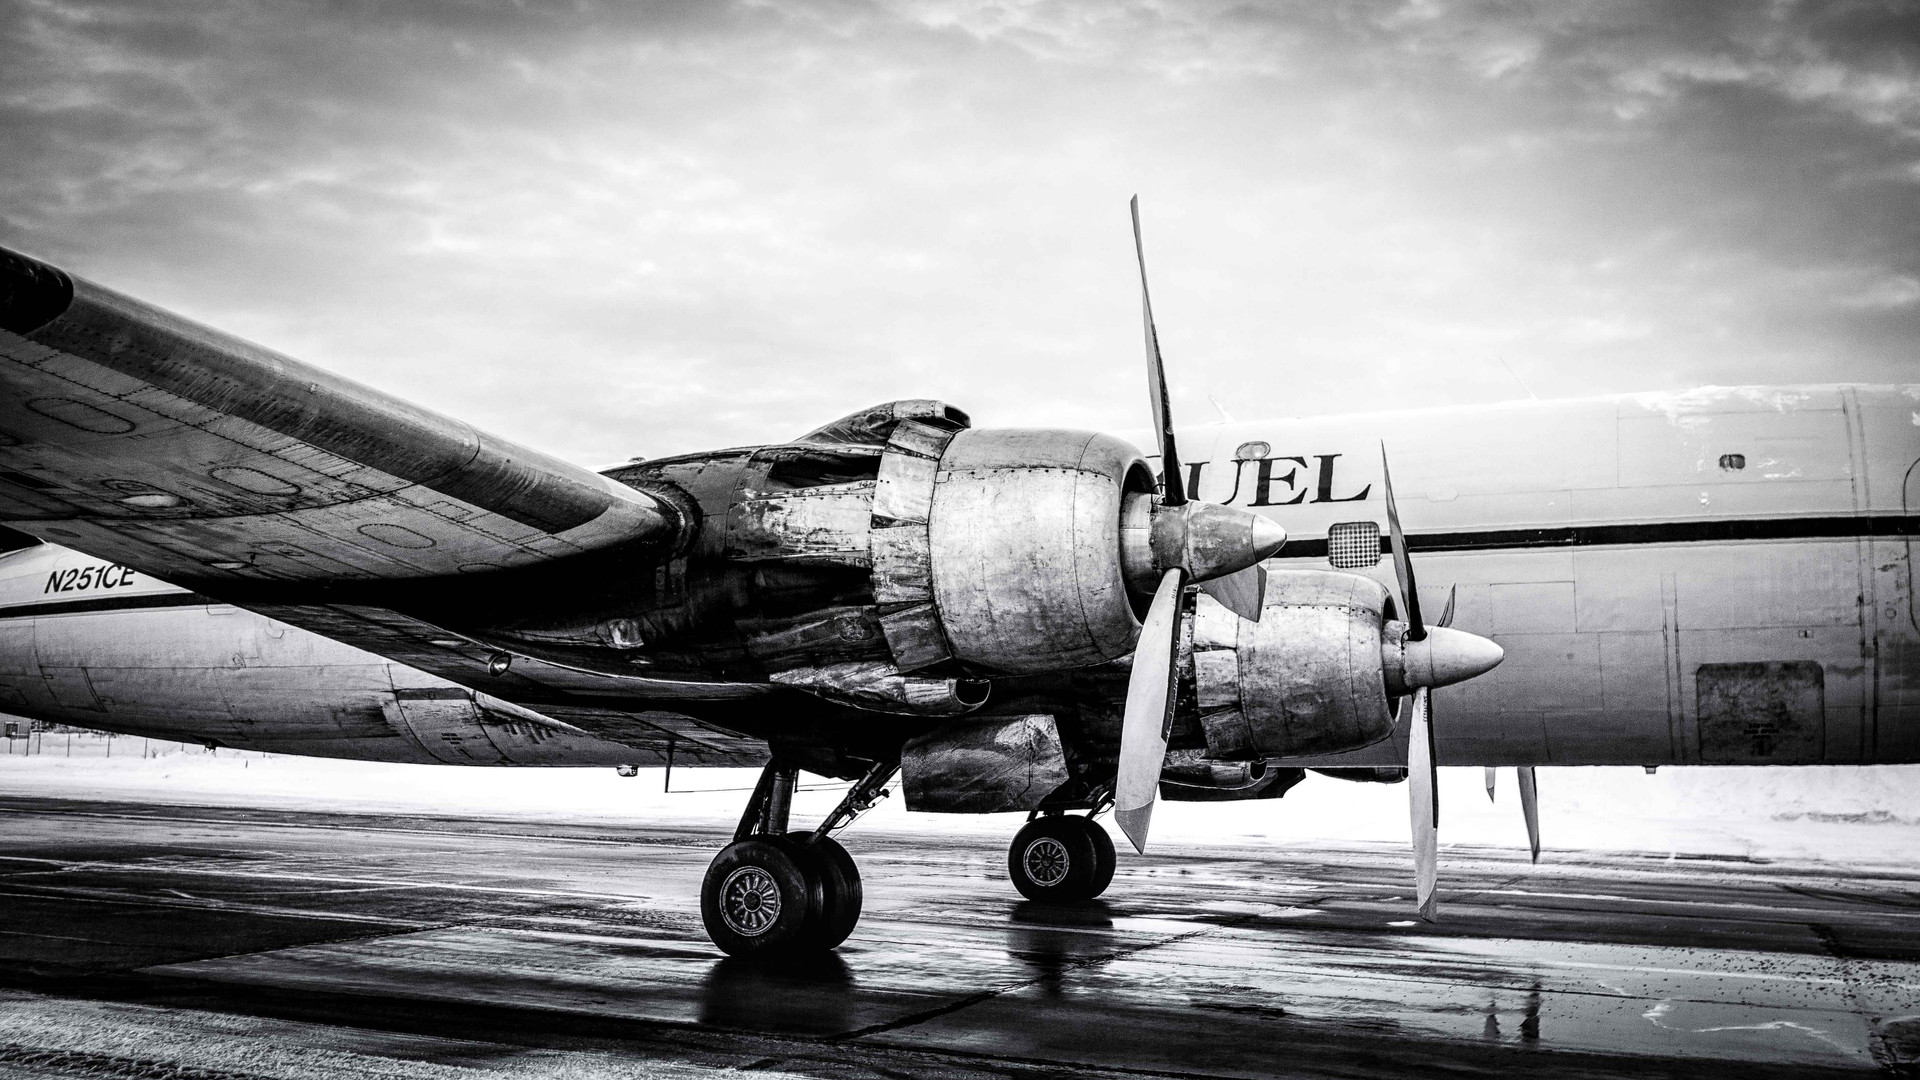 Everts Air Fuel Douglas DC-6